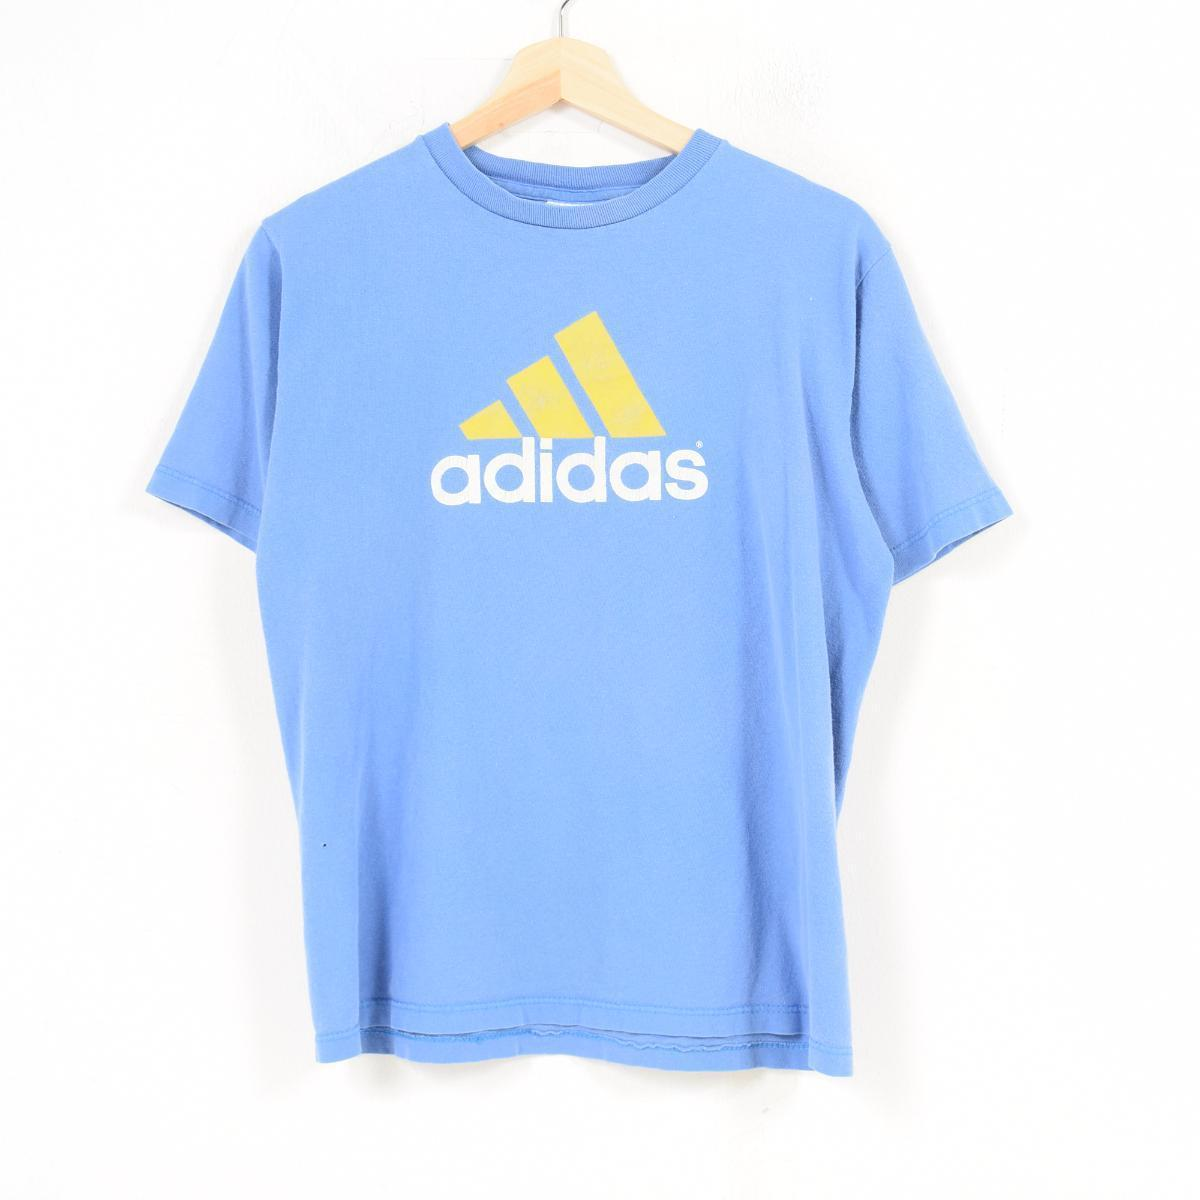 0628618b3 Men S /wat8695 in the 90s made in Adidas adidas logo T-shirt USA ...